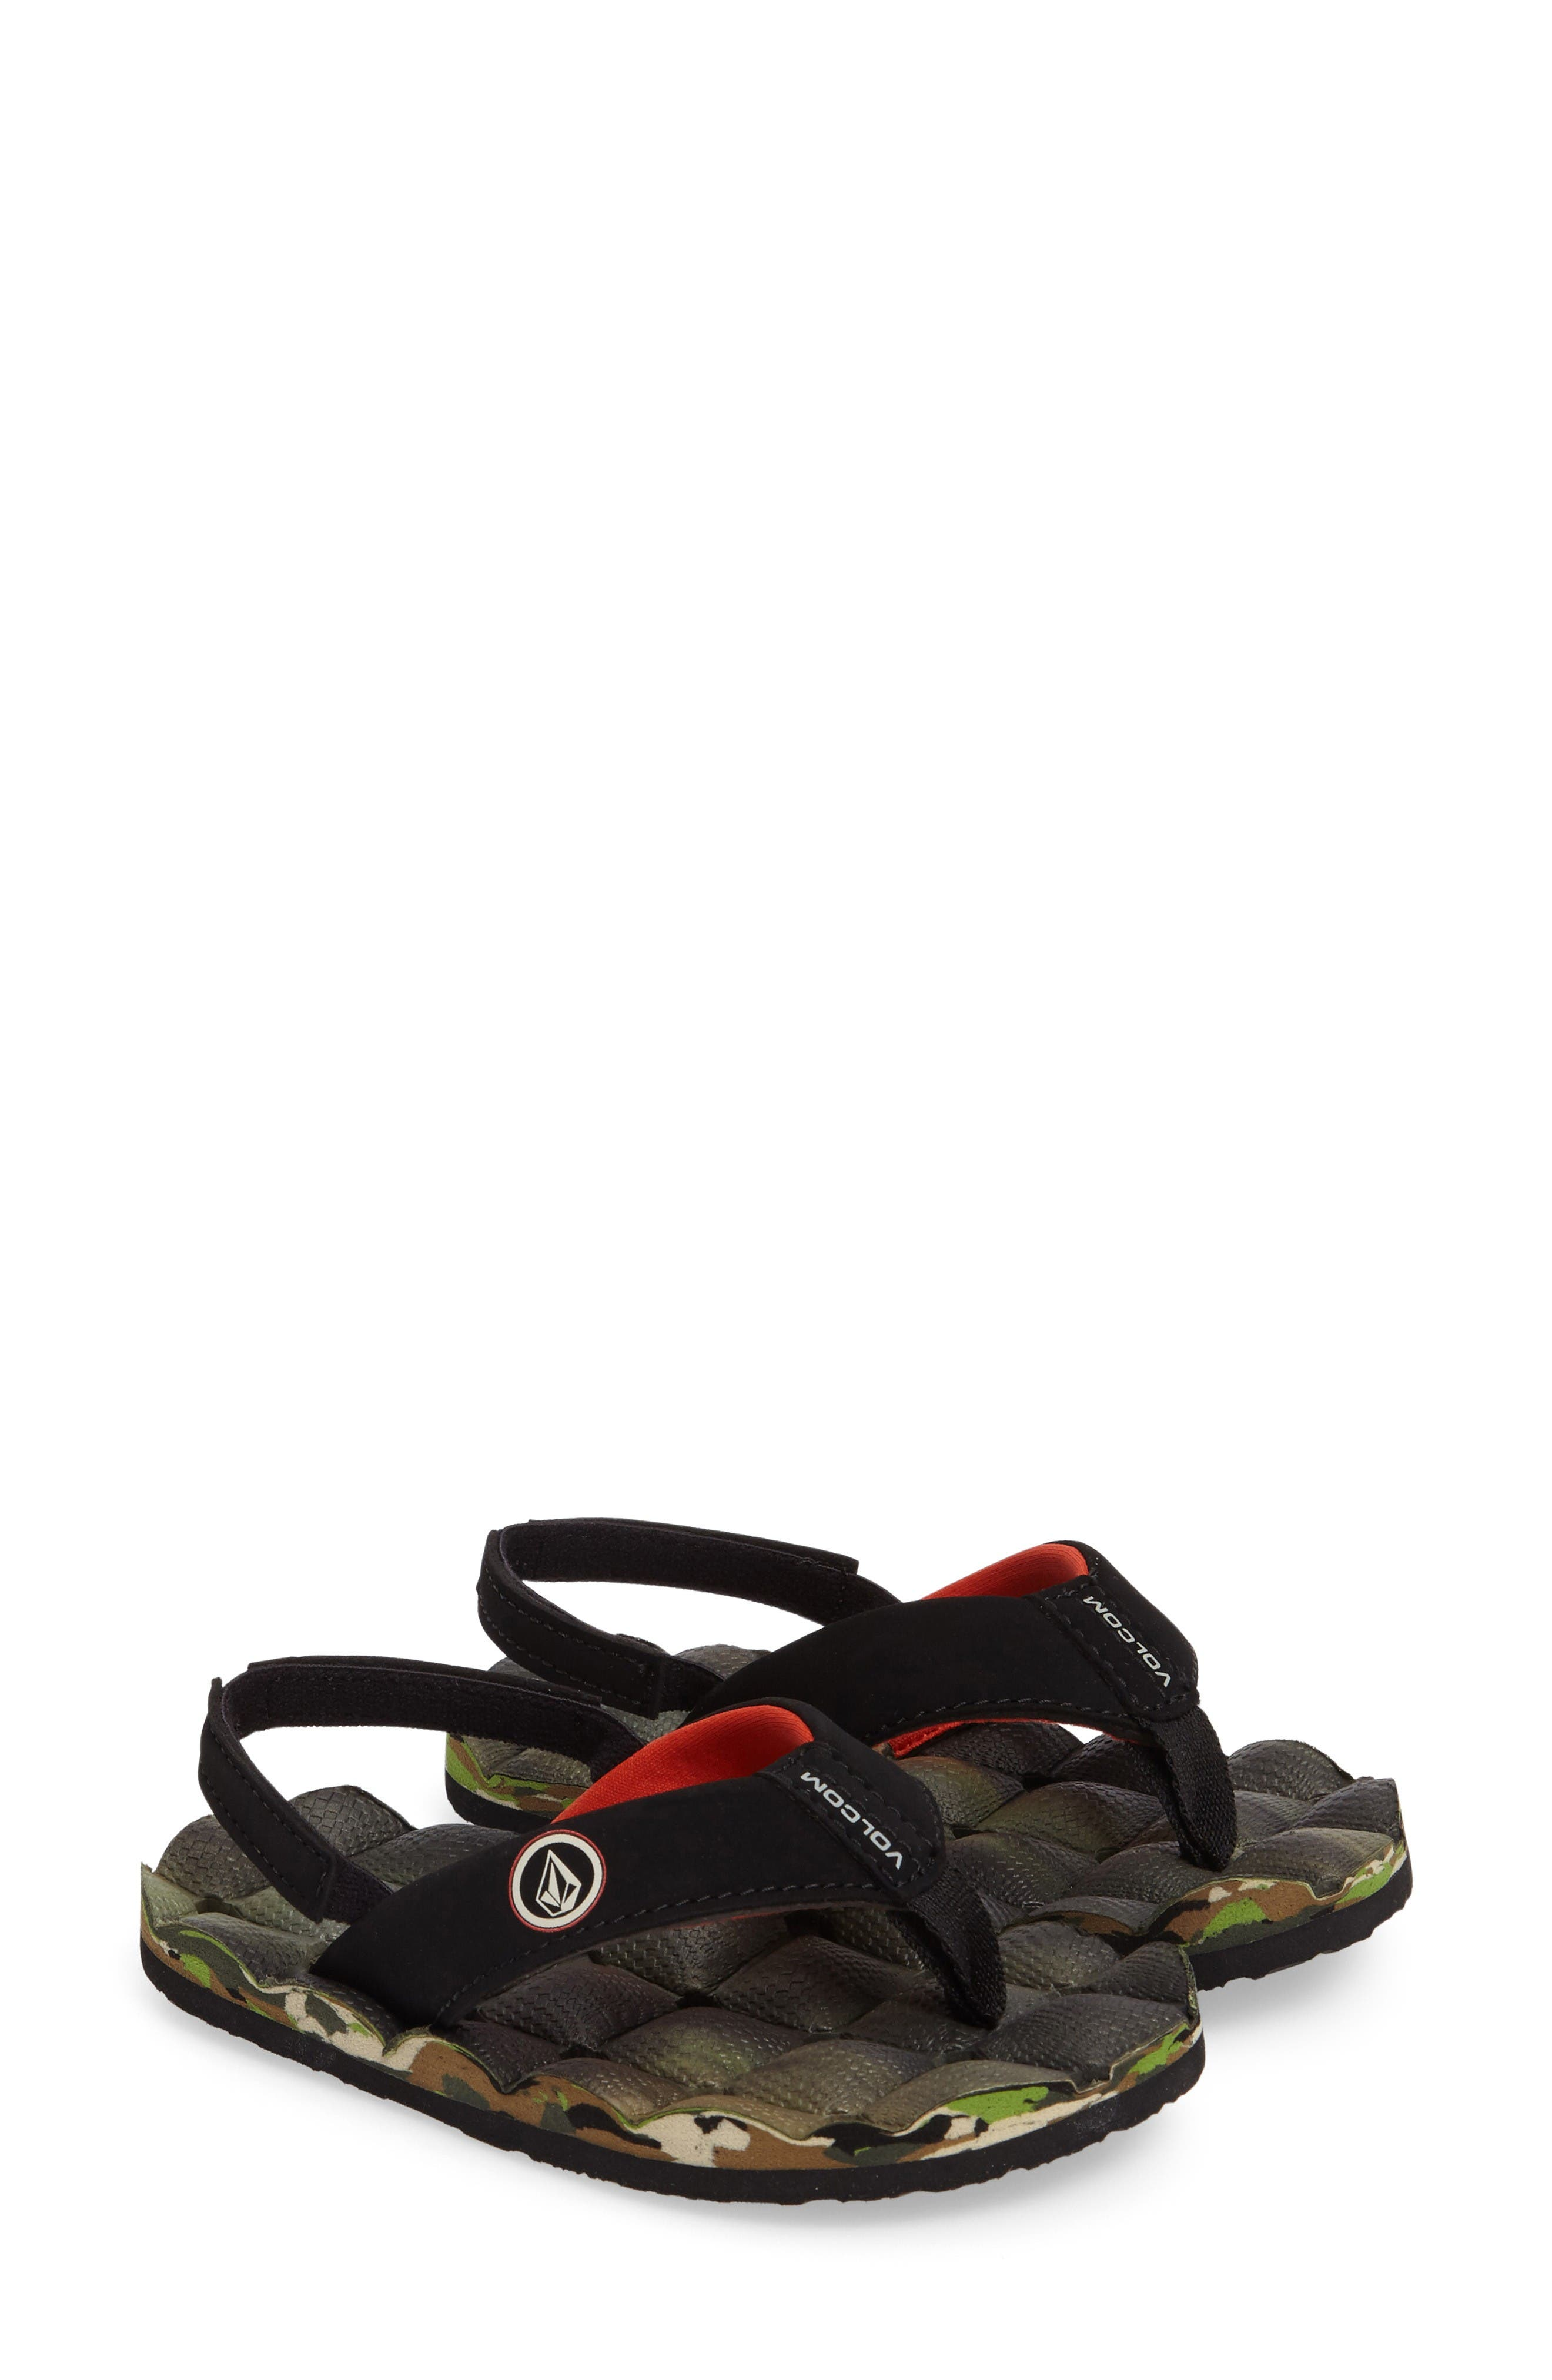 Main Image - Volcom 'Recliner' Flip Flop (Little Kid & Big Kid)